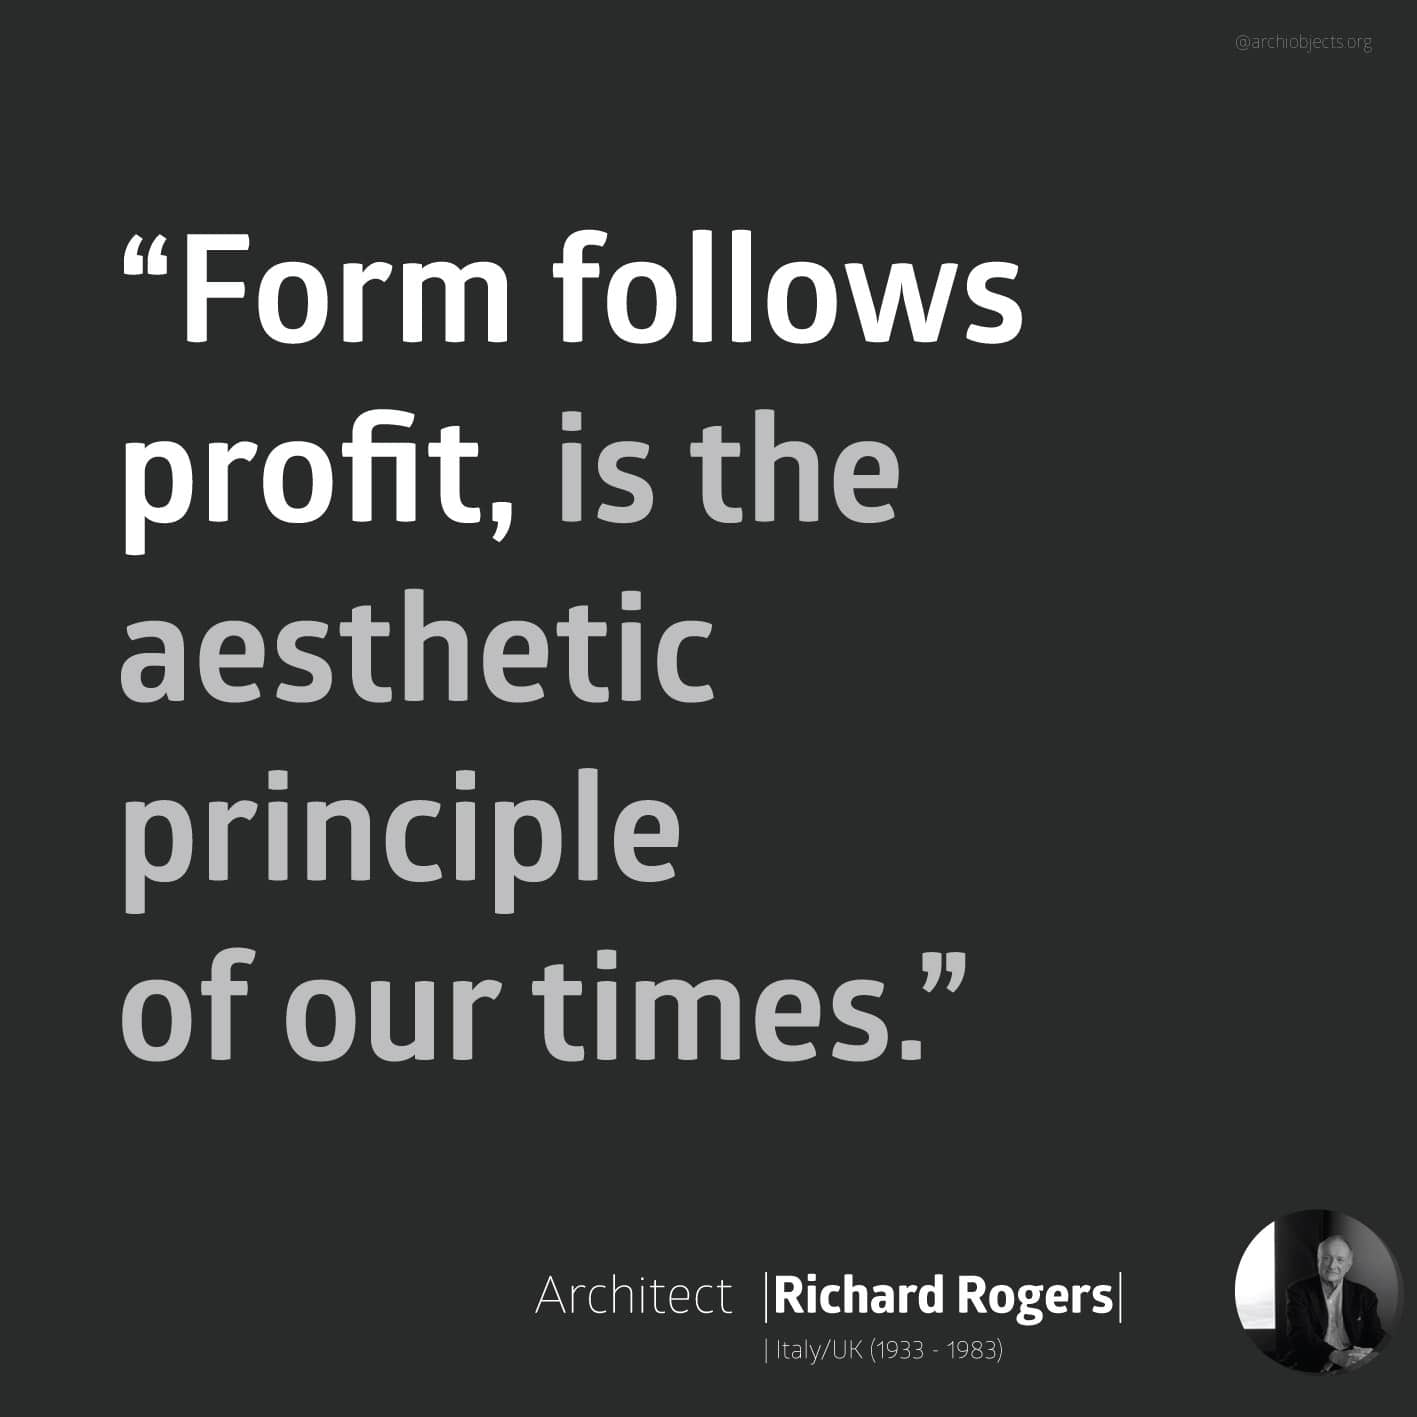 richard rogers quote Architectural Quotes - Worth spreading Architects' voice